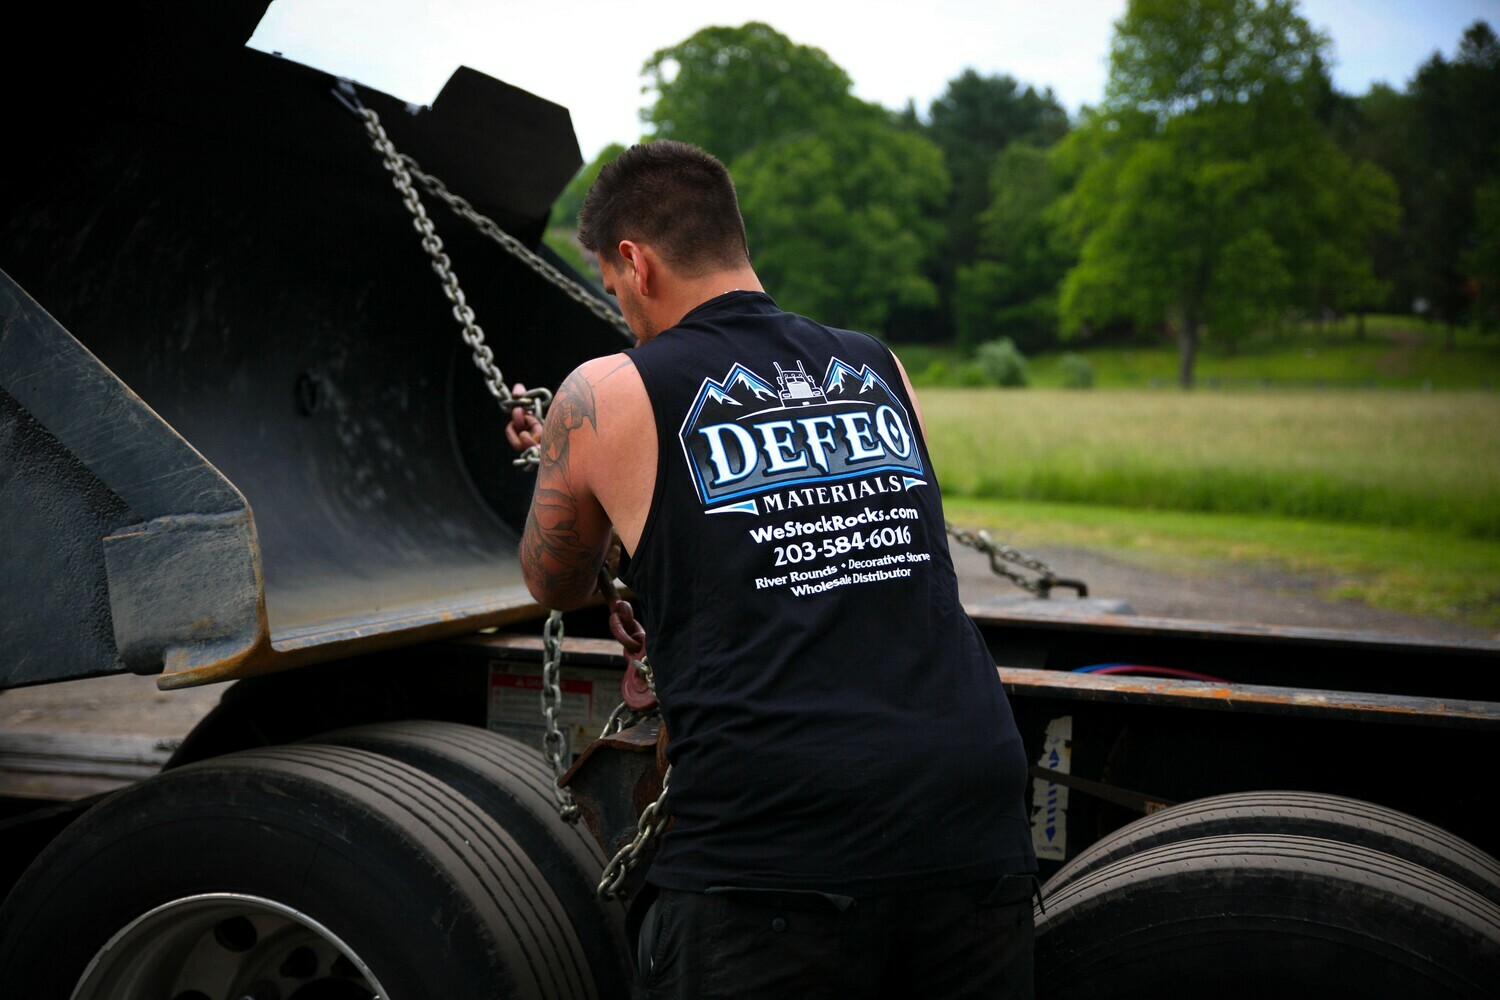 DeFeo Materials Tank Tops